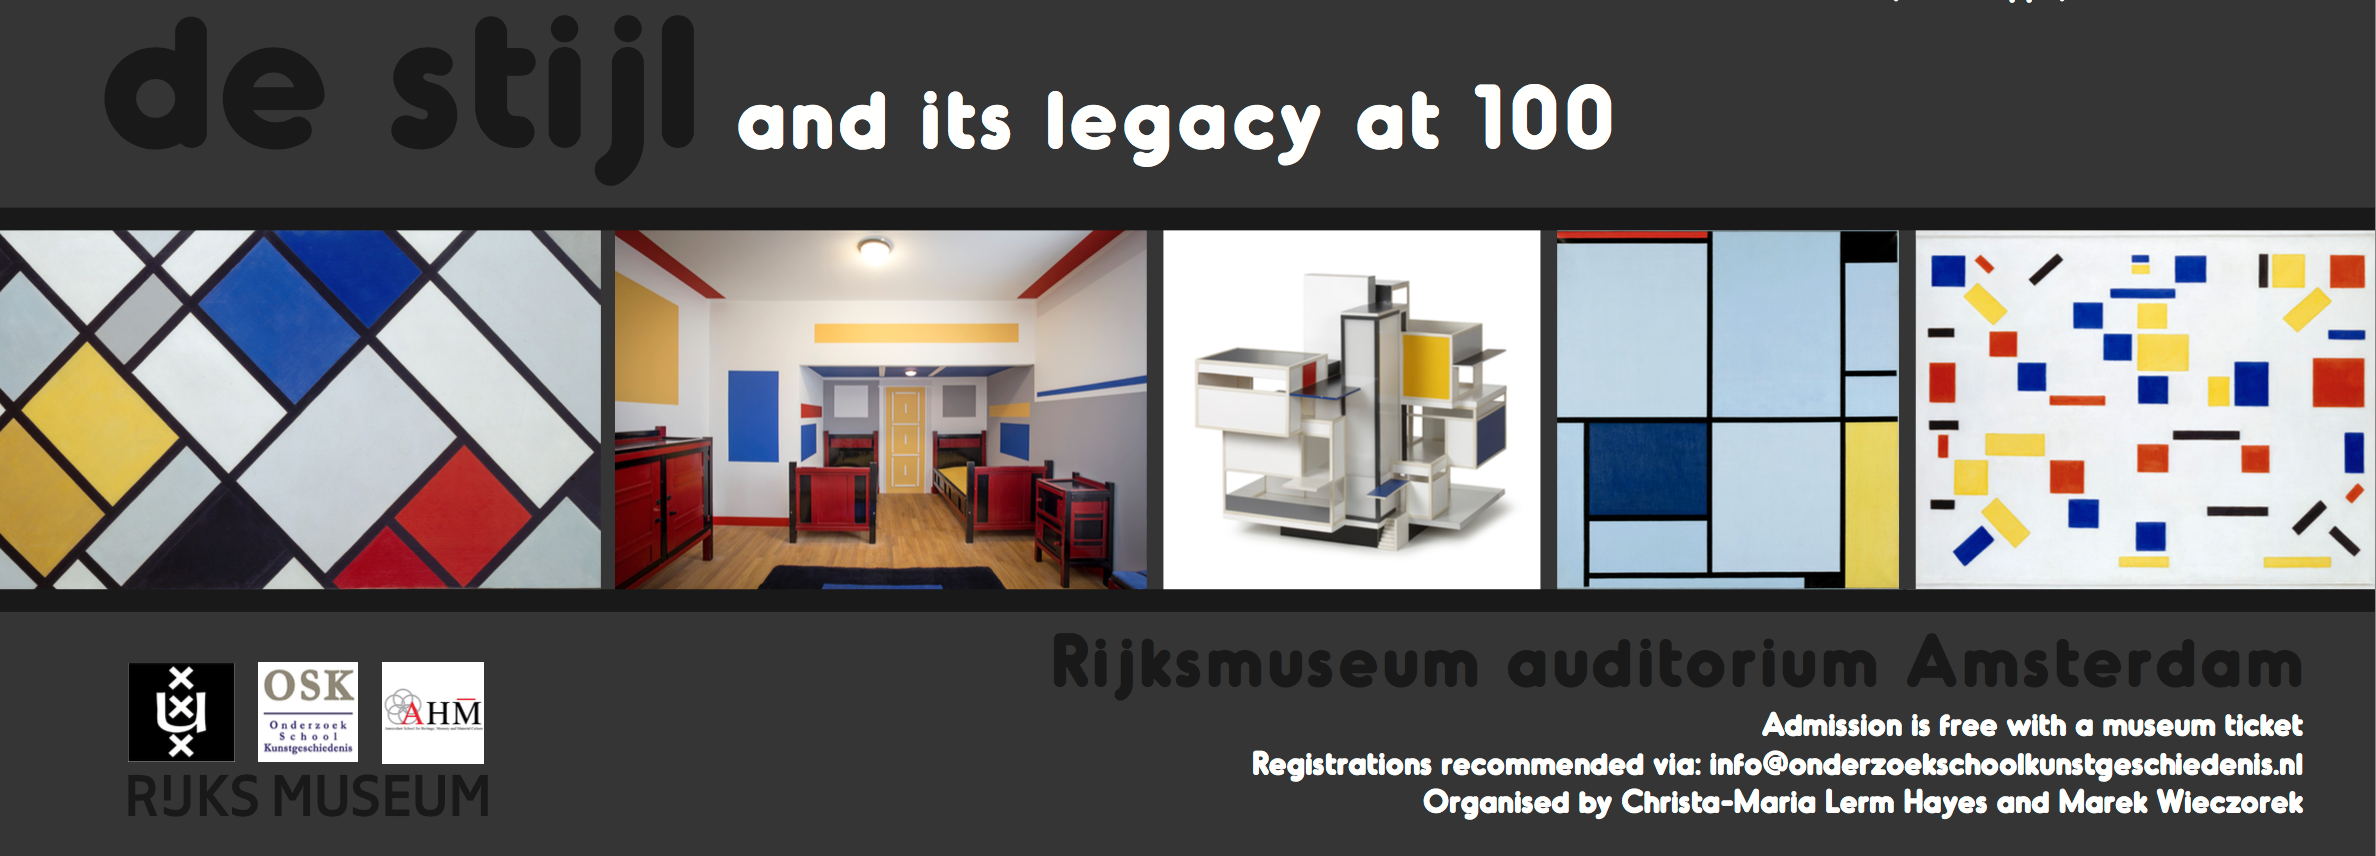 20160420_De Stijl and Its Legacy at 100